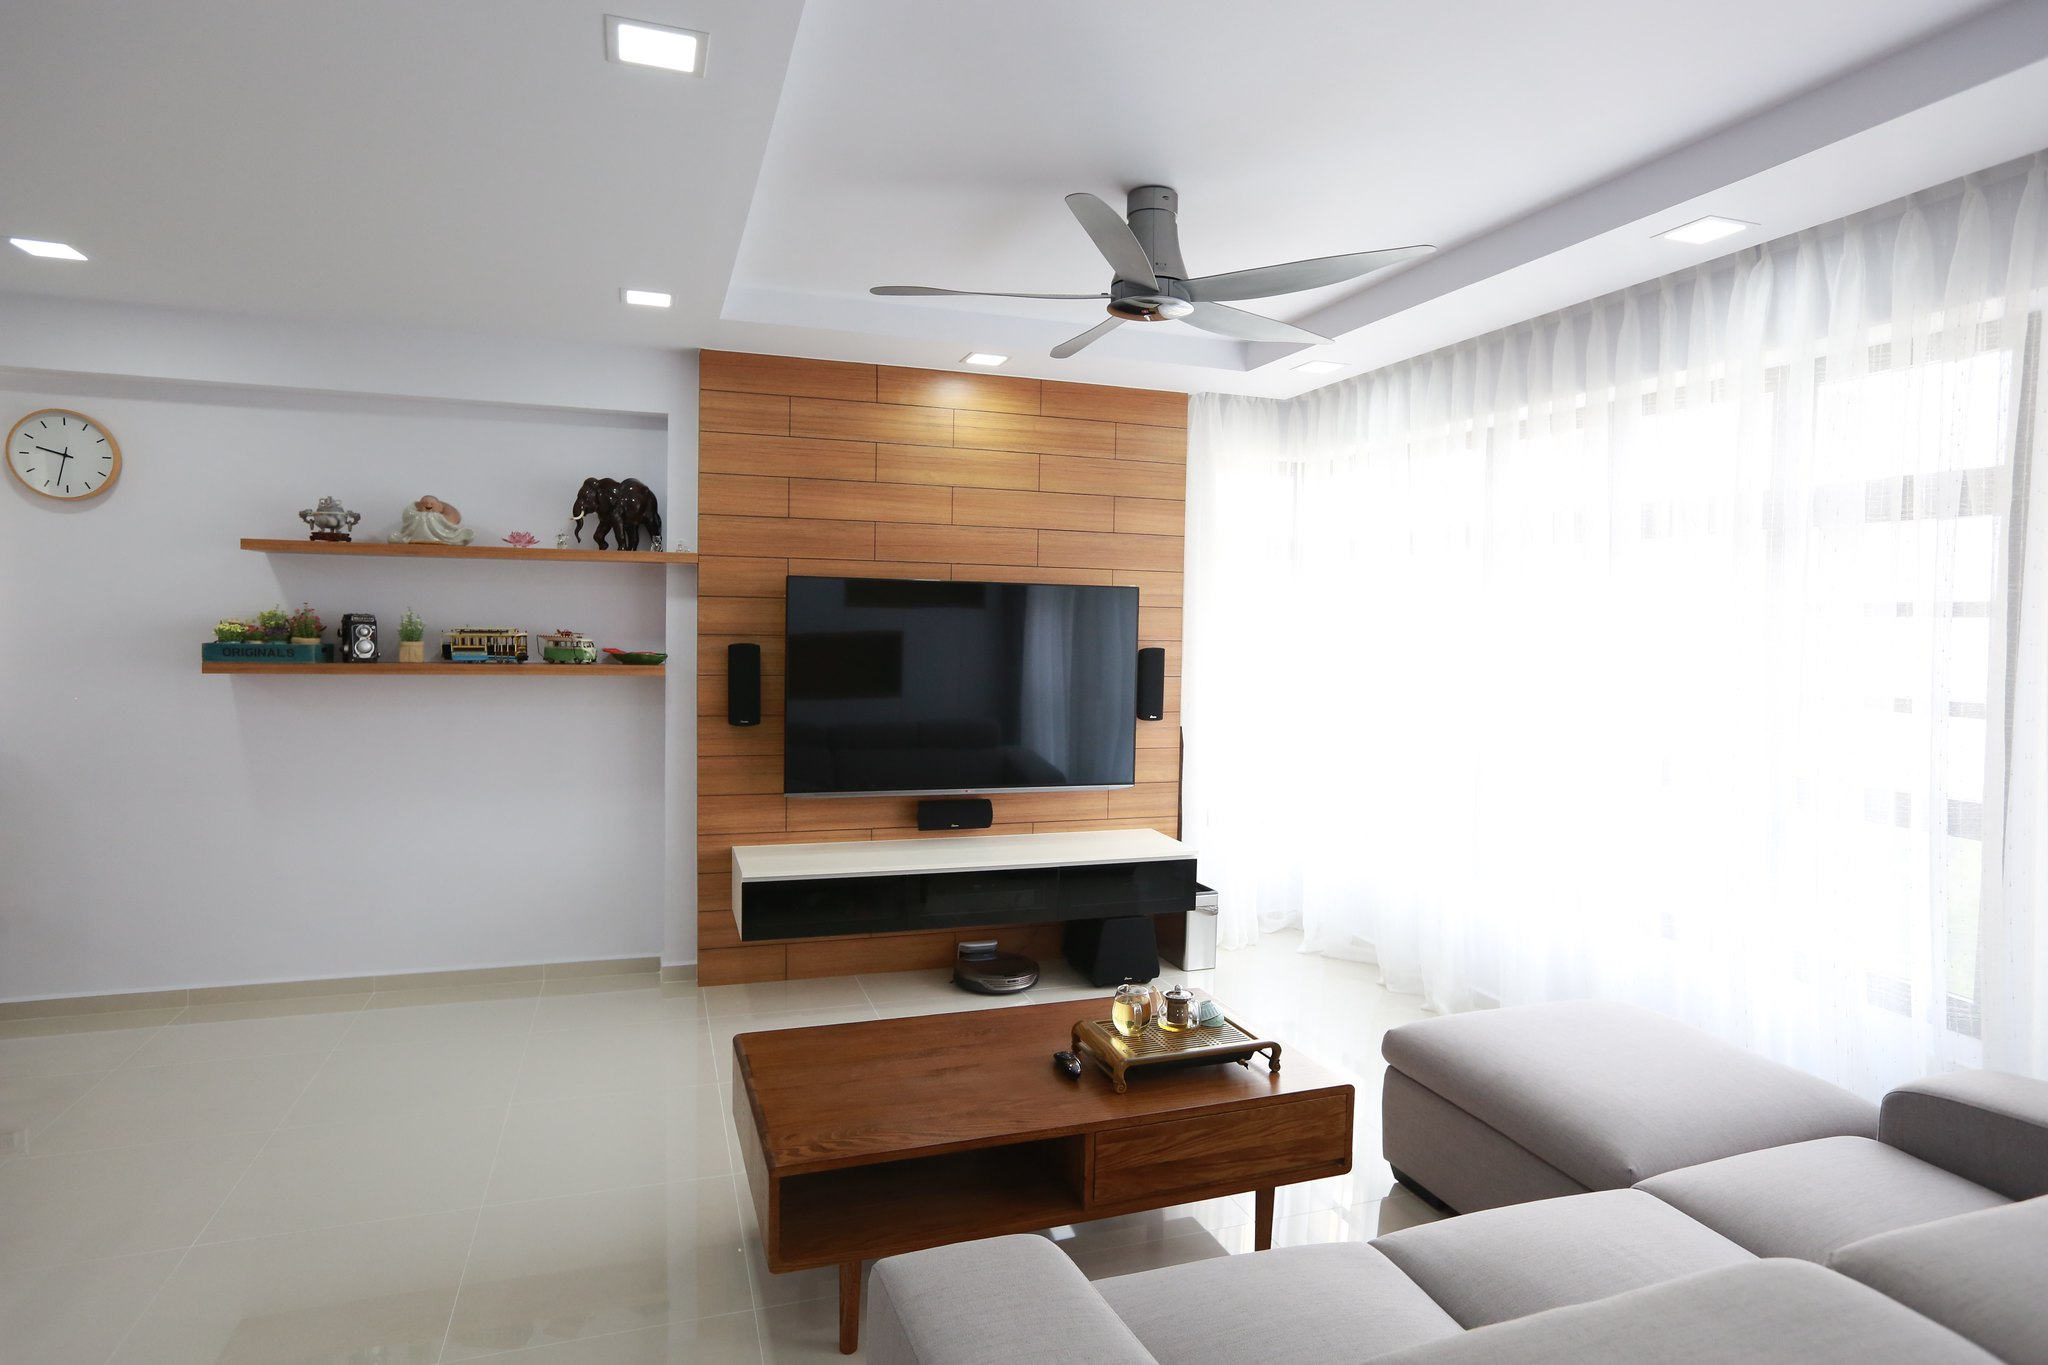 simple false ceiling design for small living room art prints freb's 5 renovation journey - reno t-blog chat hdb ...